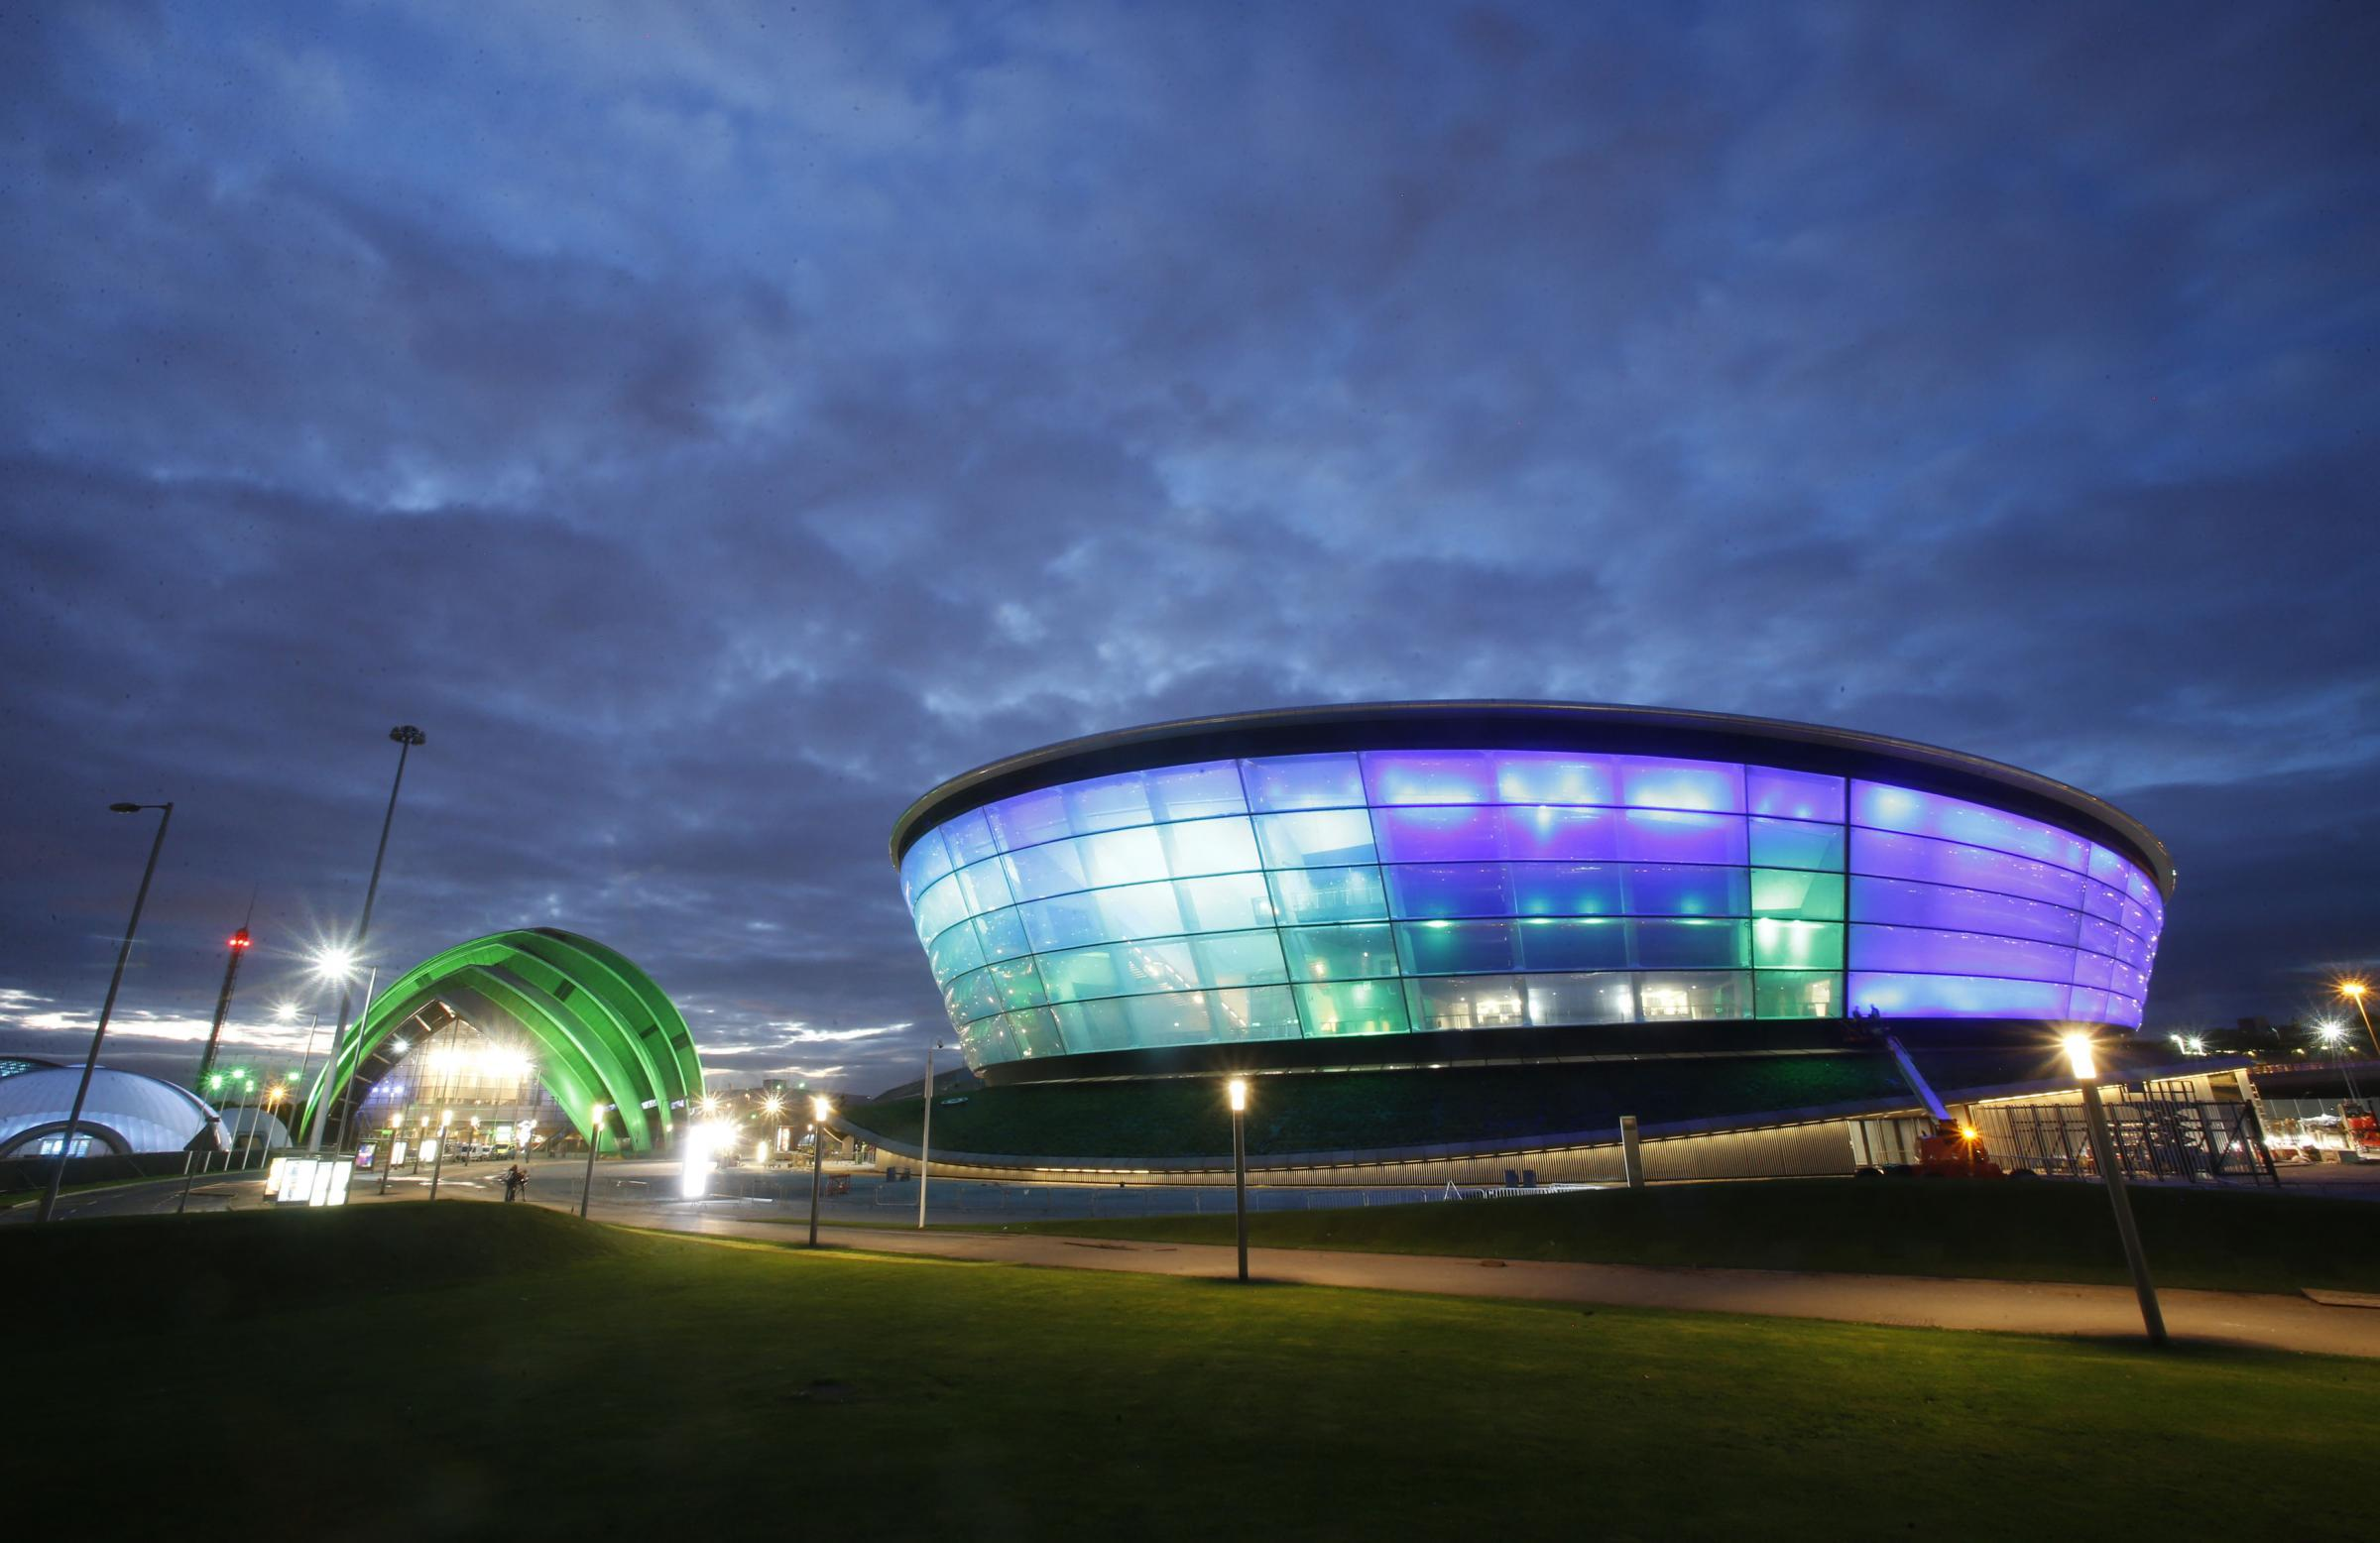 Opinion: Glasgow will see very little benefit from hosting CoP26